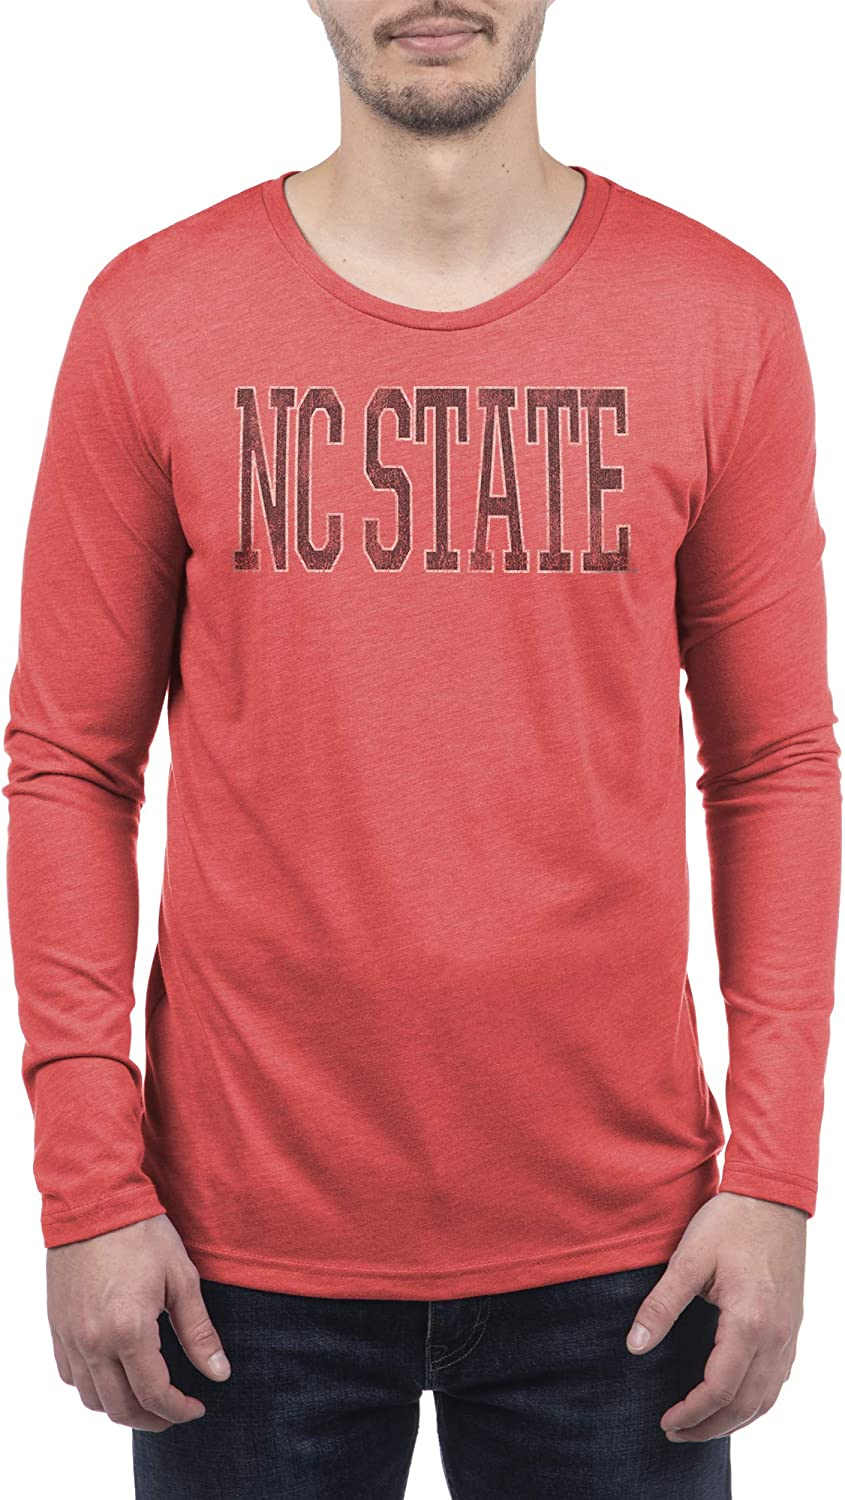 Top of the World NCAA Mens Tri-Blend Long Sleeve Team Color Distressed Icon Tee